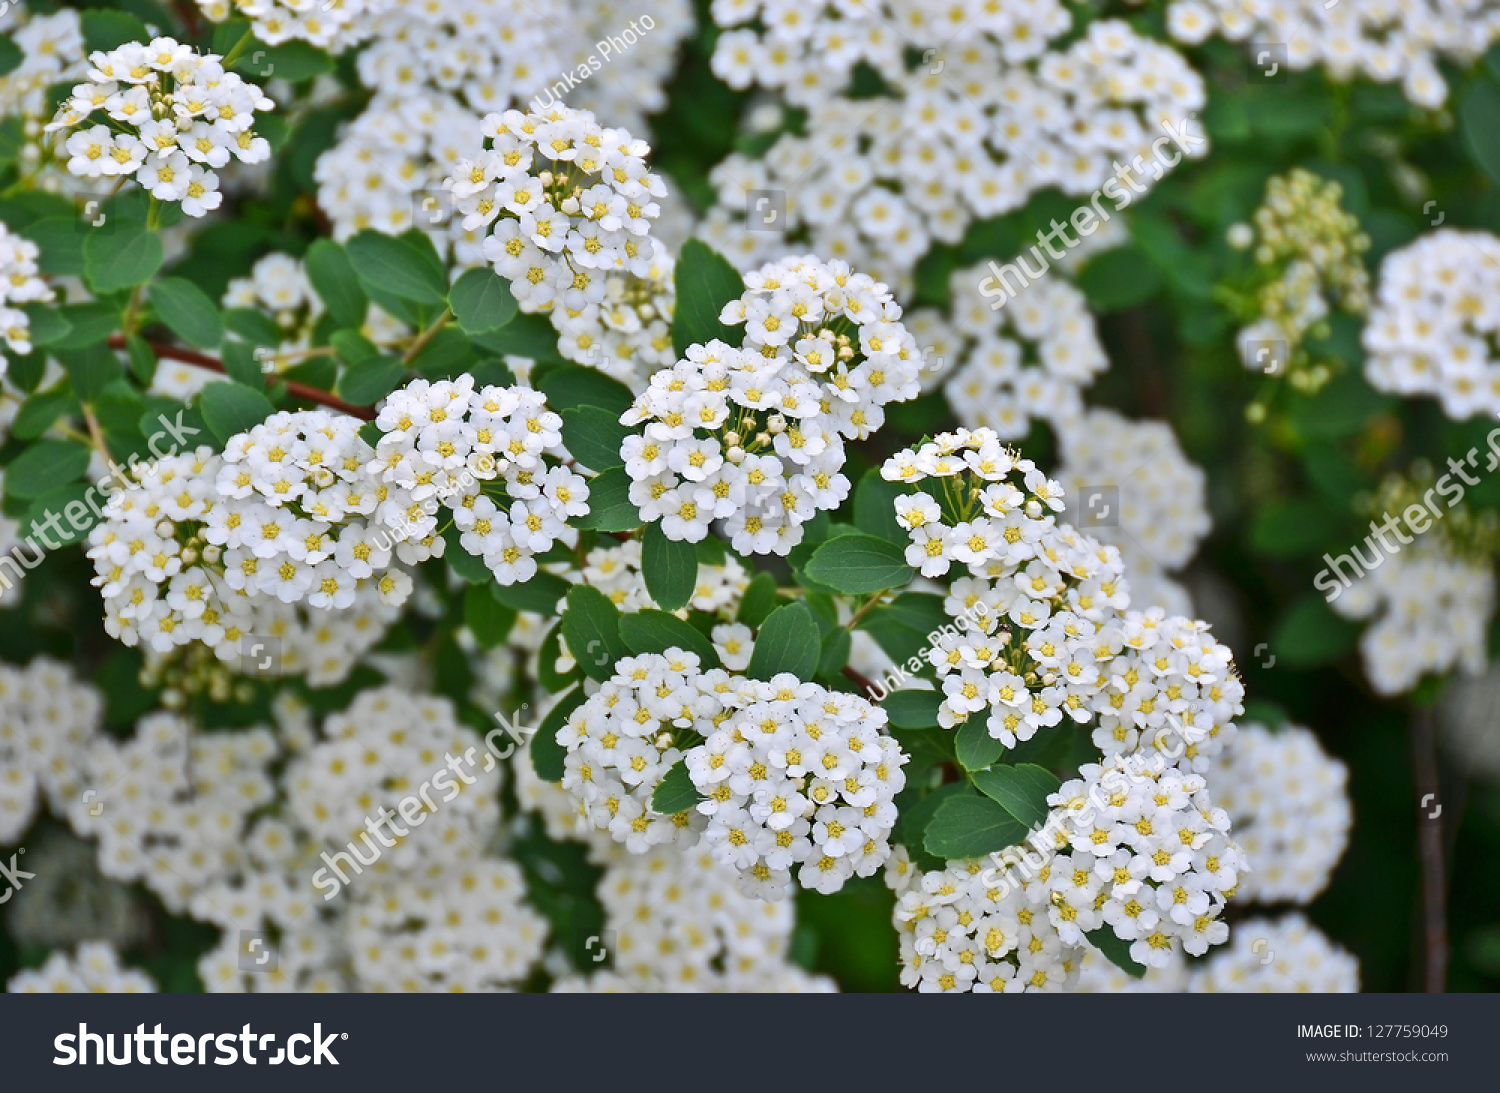 Spiraea alpine spring flower white flowering stock photo for White flowering bush